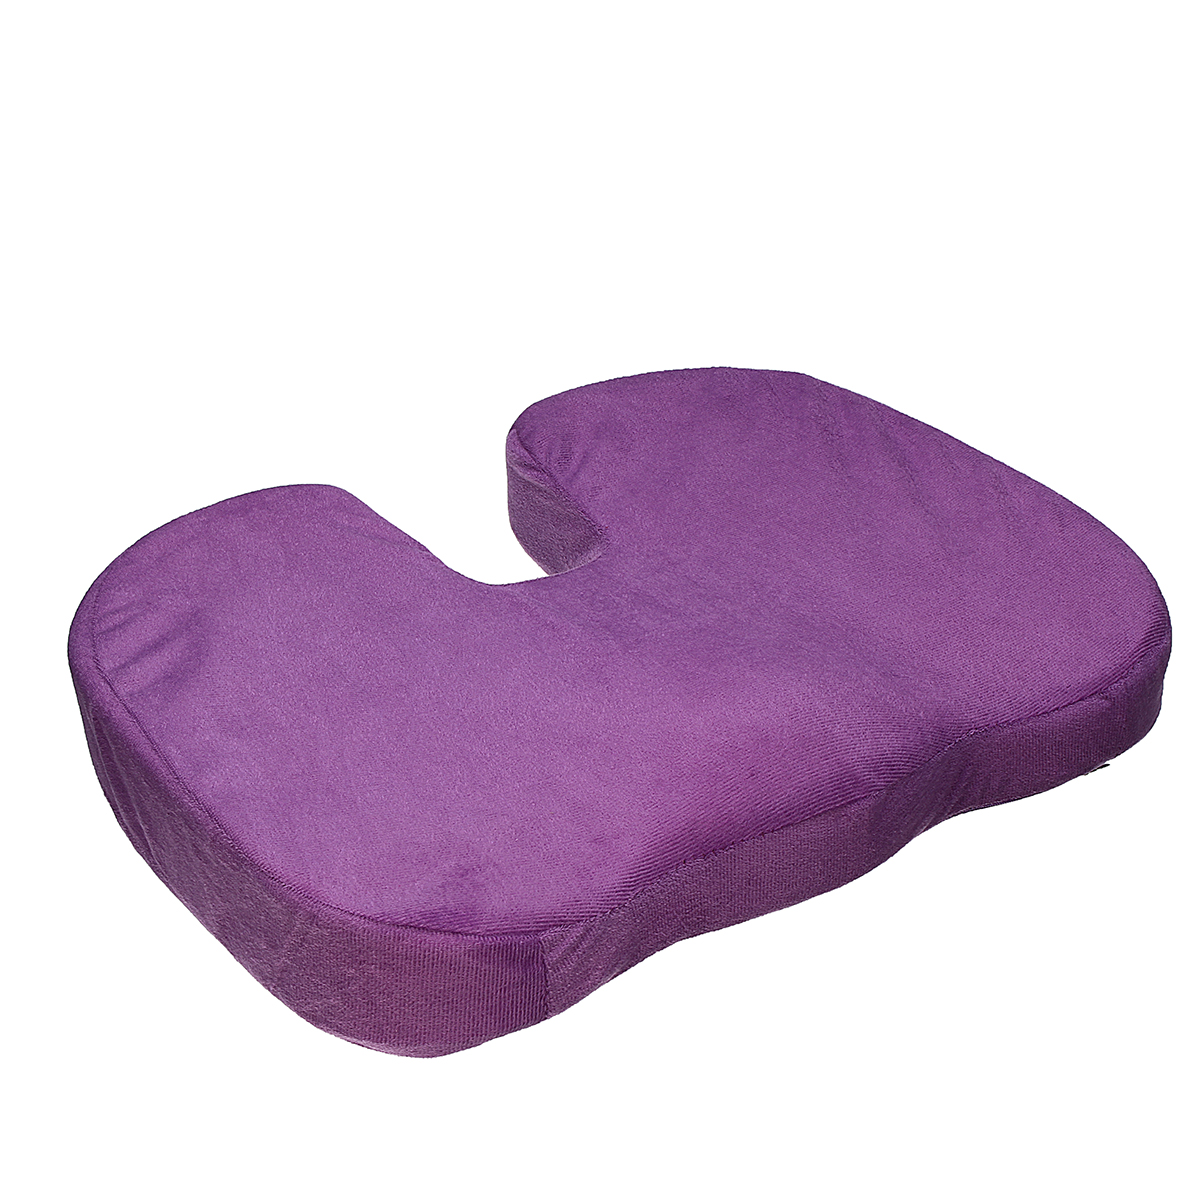 Memory Foam Seat Cushion Hip Pain Relief Orthopedic Chair Pad Pillow Bolster Relief Solution